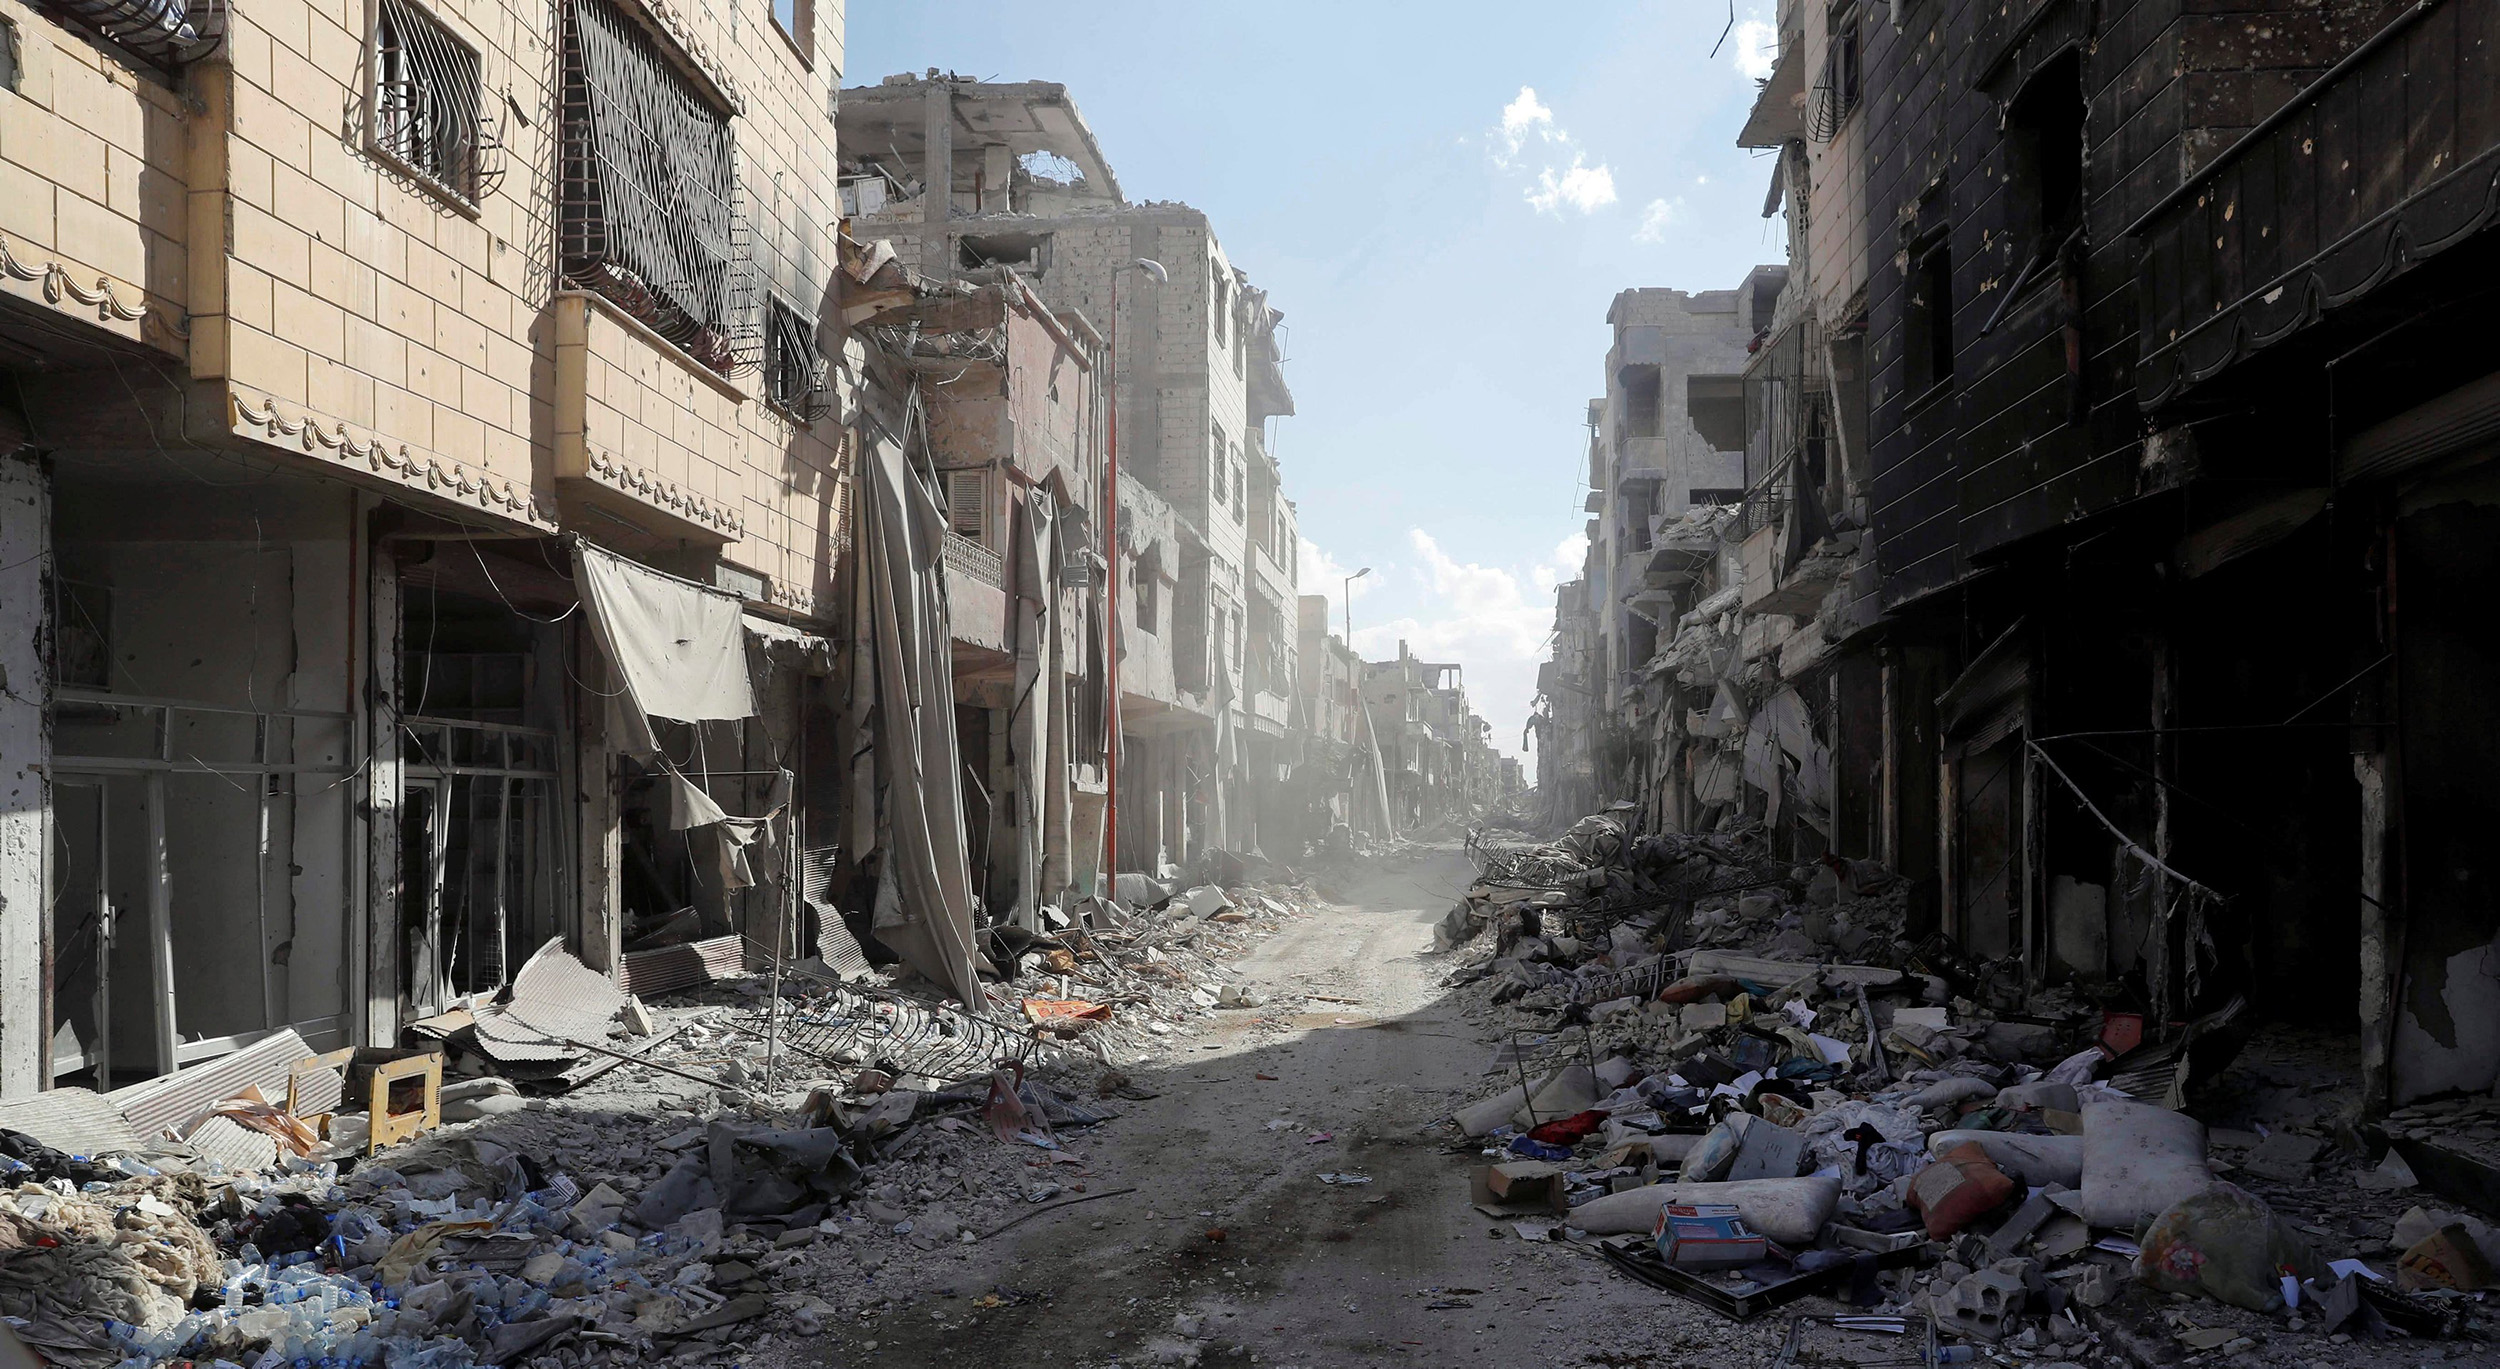 Image: A view of Raqqa's Old City